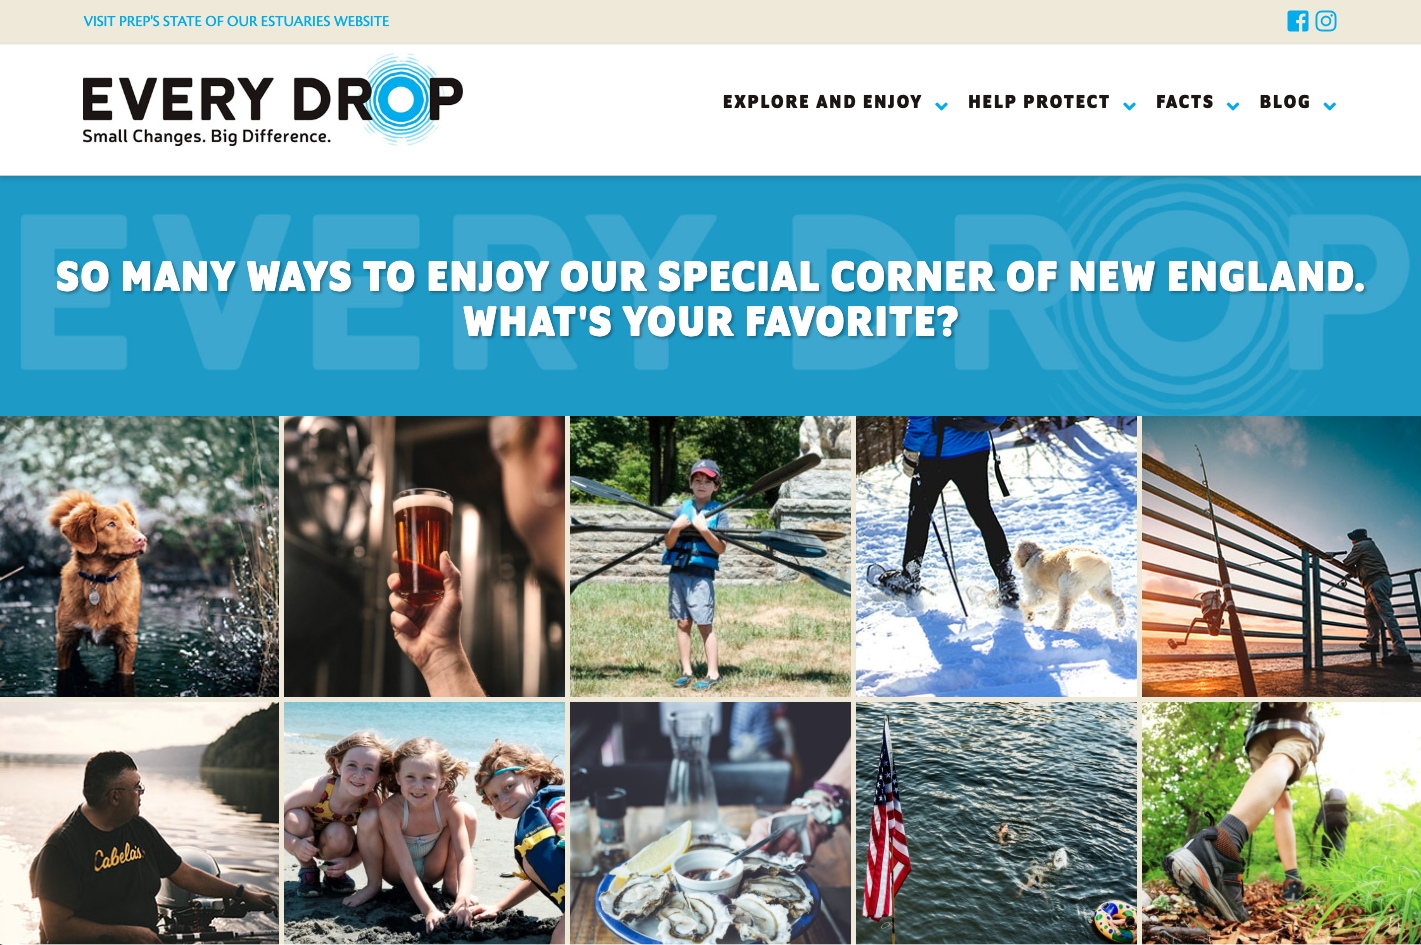 The Every Drop Campaign website was created in partnership with  Tangram 3DS . This rockstar campaign is aimed at rallying supporters to both enjoy and protect the Seacoast's waters and lands. The client had a multitude of target audiences and messages and we were able to fine tune the message and tell the authentic story through the use of powerful photos, multi-author blogs, and an integrated social media campaign. The website is created using Wordpress.   www.stateofourestuaries.org/everydrop